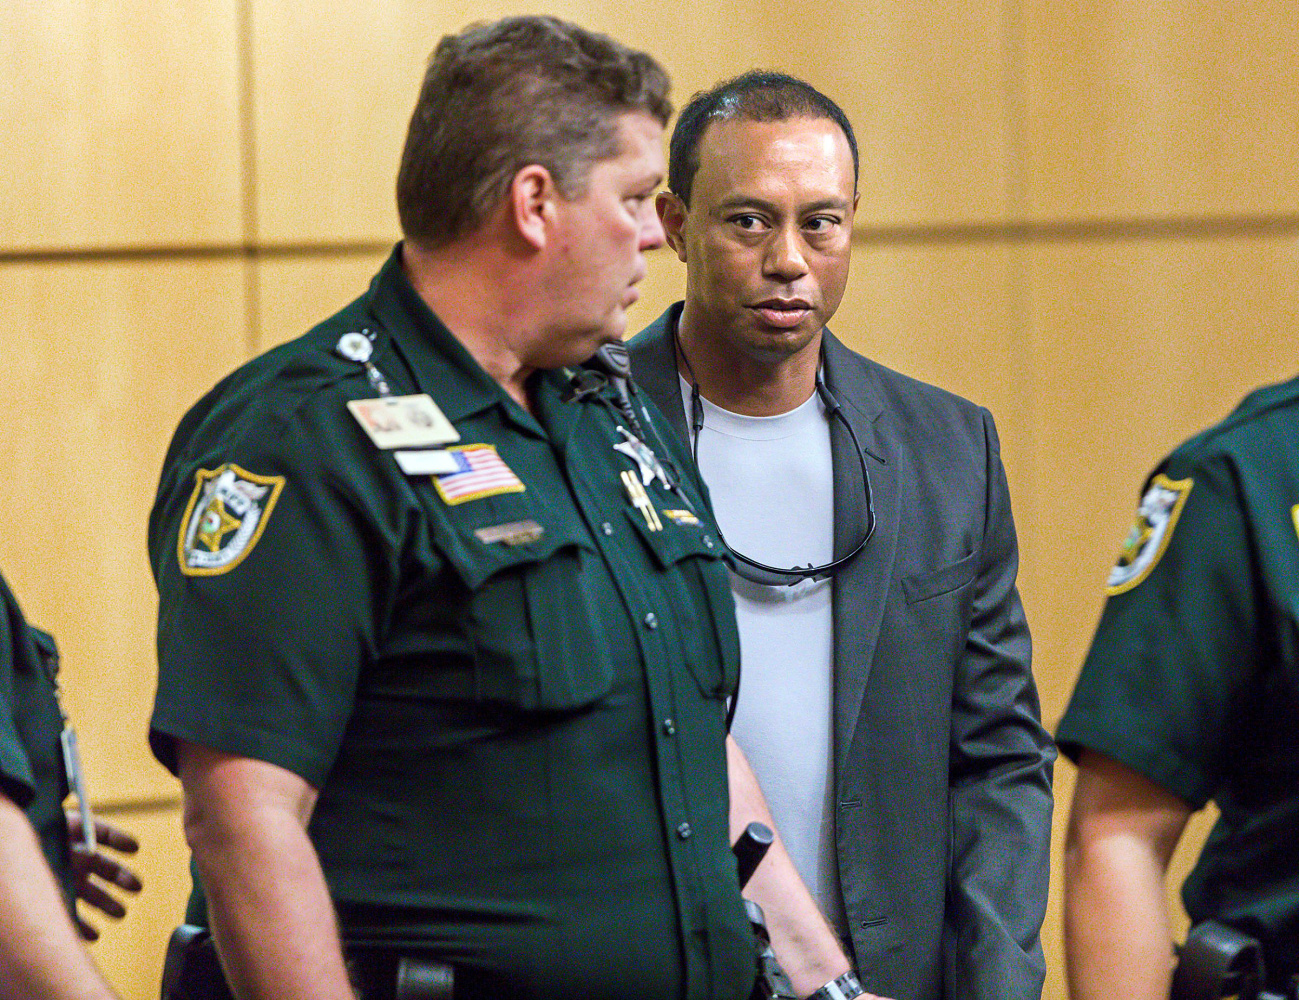 Champion Driving School >> Tiger Woods Pleads Guilty to Reckless Driving in DUI Case - NBC News